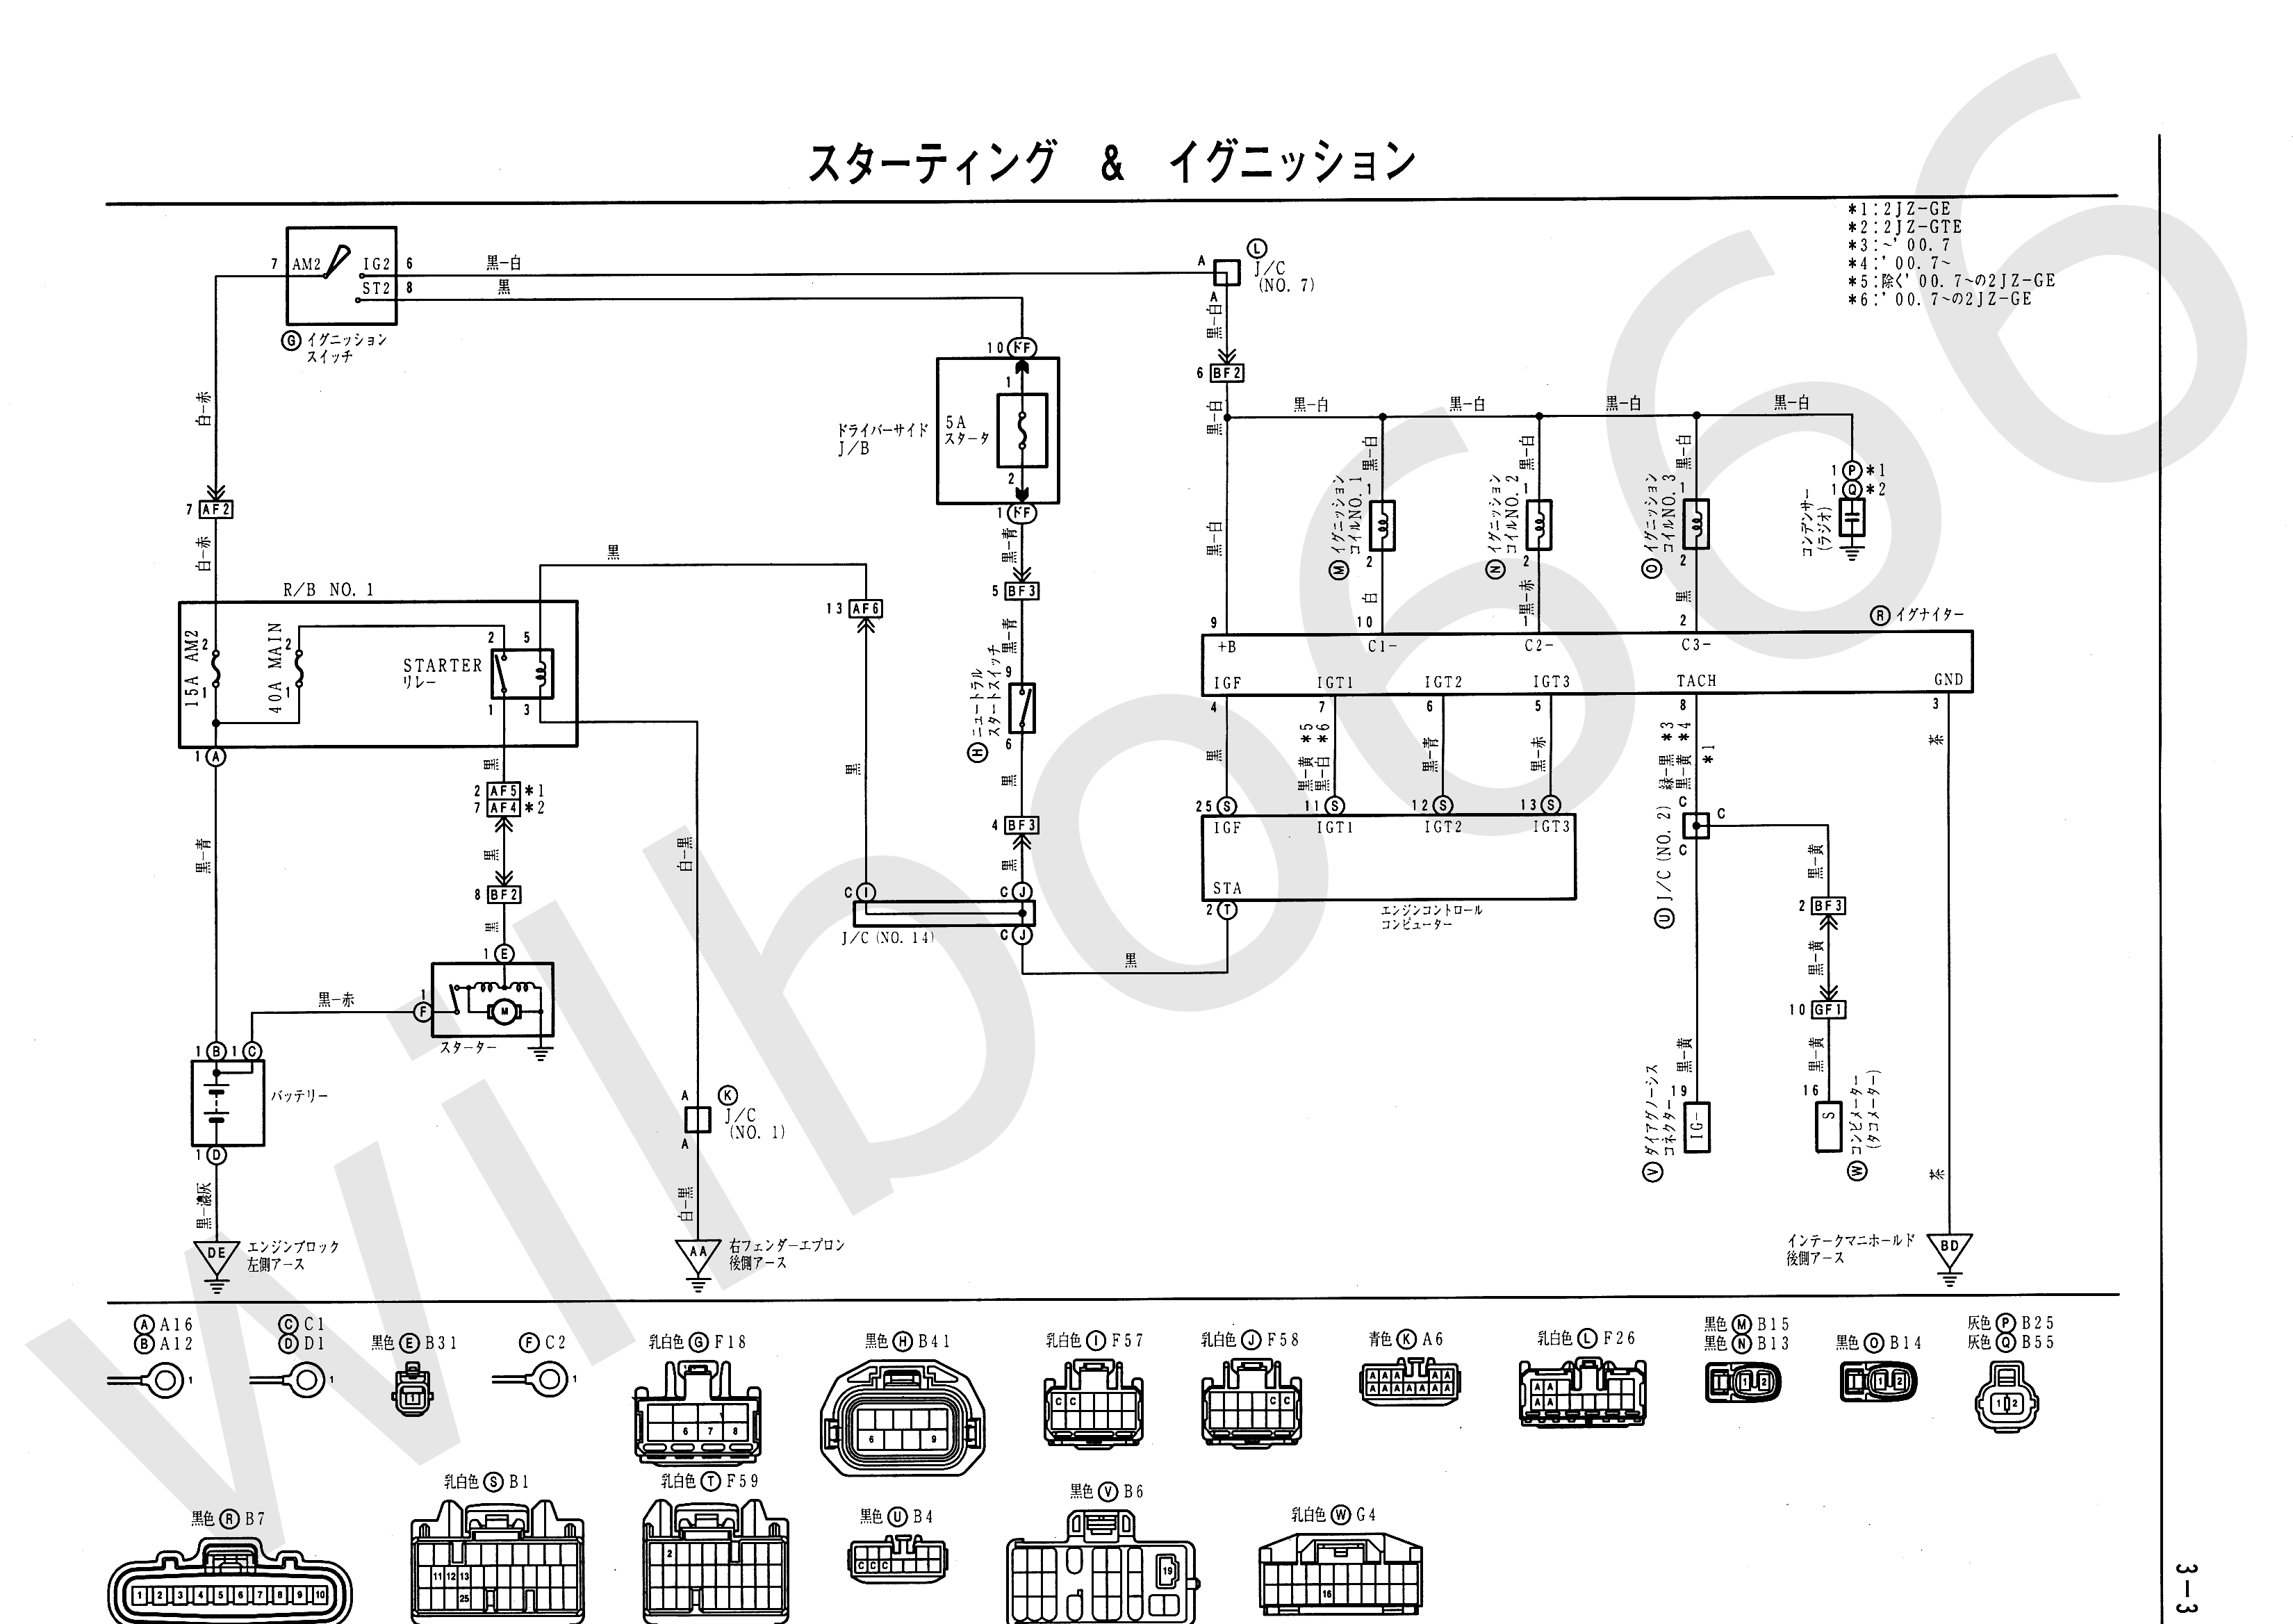 JZS161 Electrical Wiring Diagram 6748505 3 3 wilbo666 2jz gte vvti jzs161 aristo engine wiring  at readyjetset.co